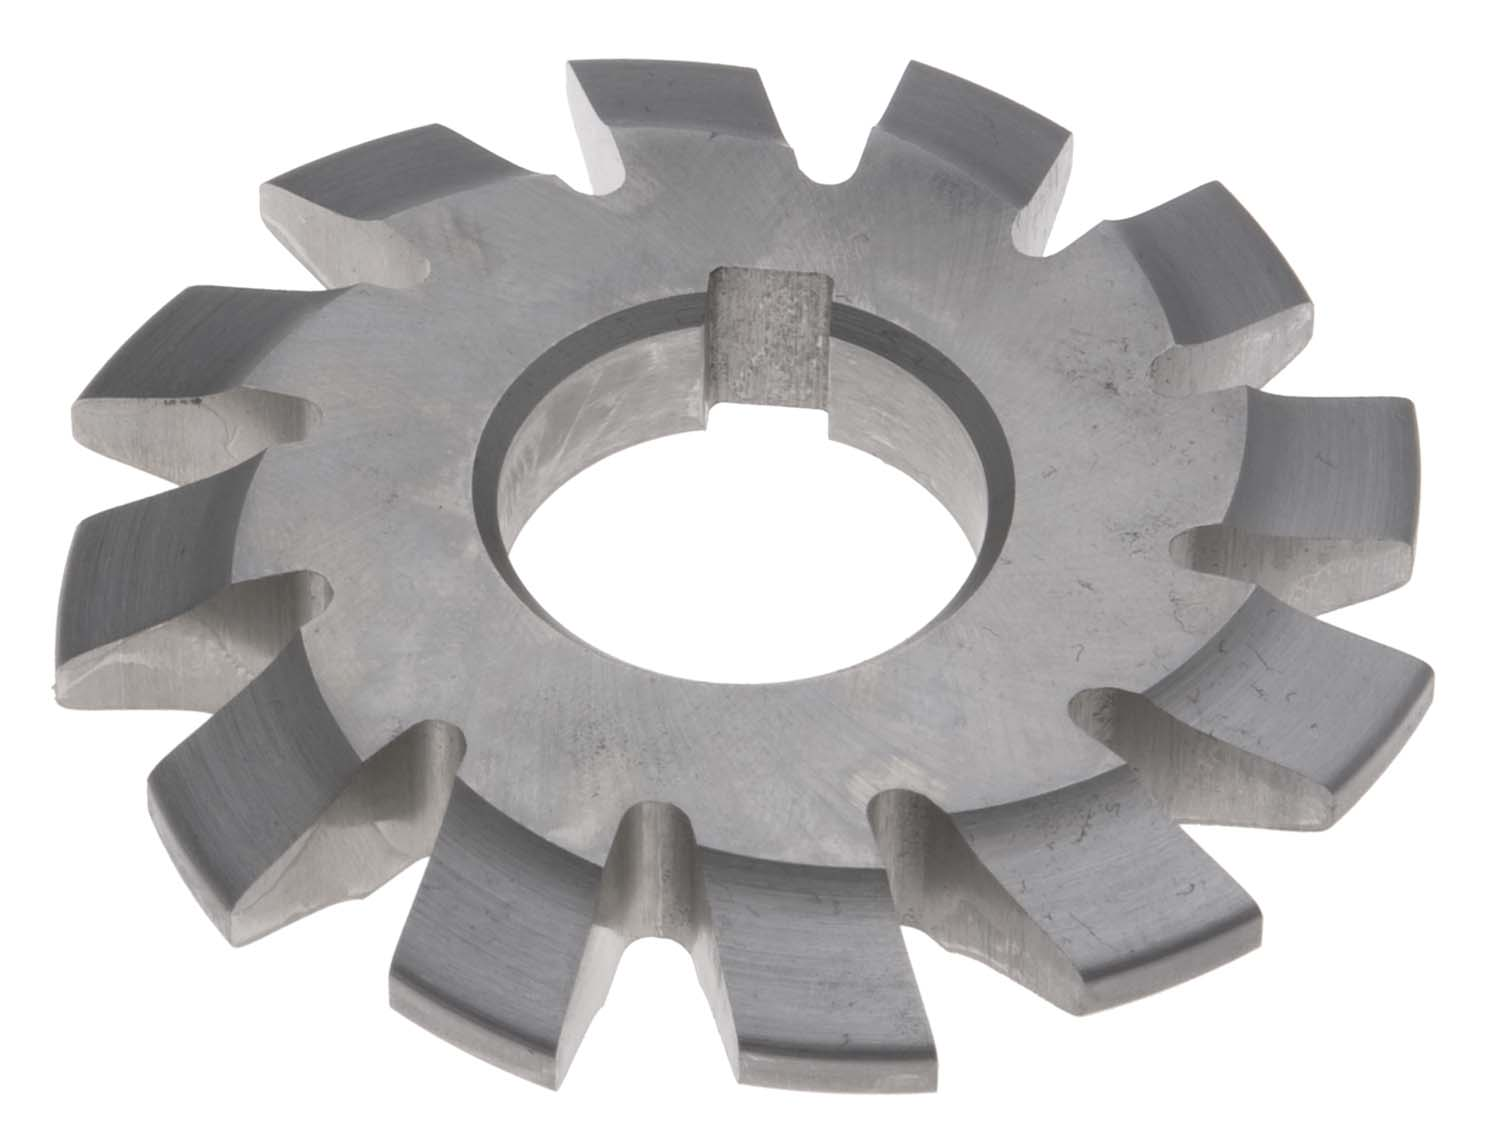 8 Diametral Pitch # 1  Involute Gear Cutter - 1 Inch ID - 14-1/2 Degree Pressure Angle